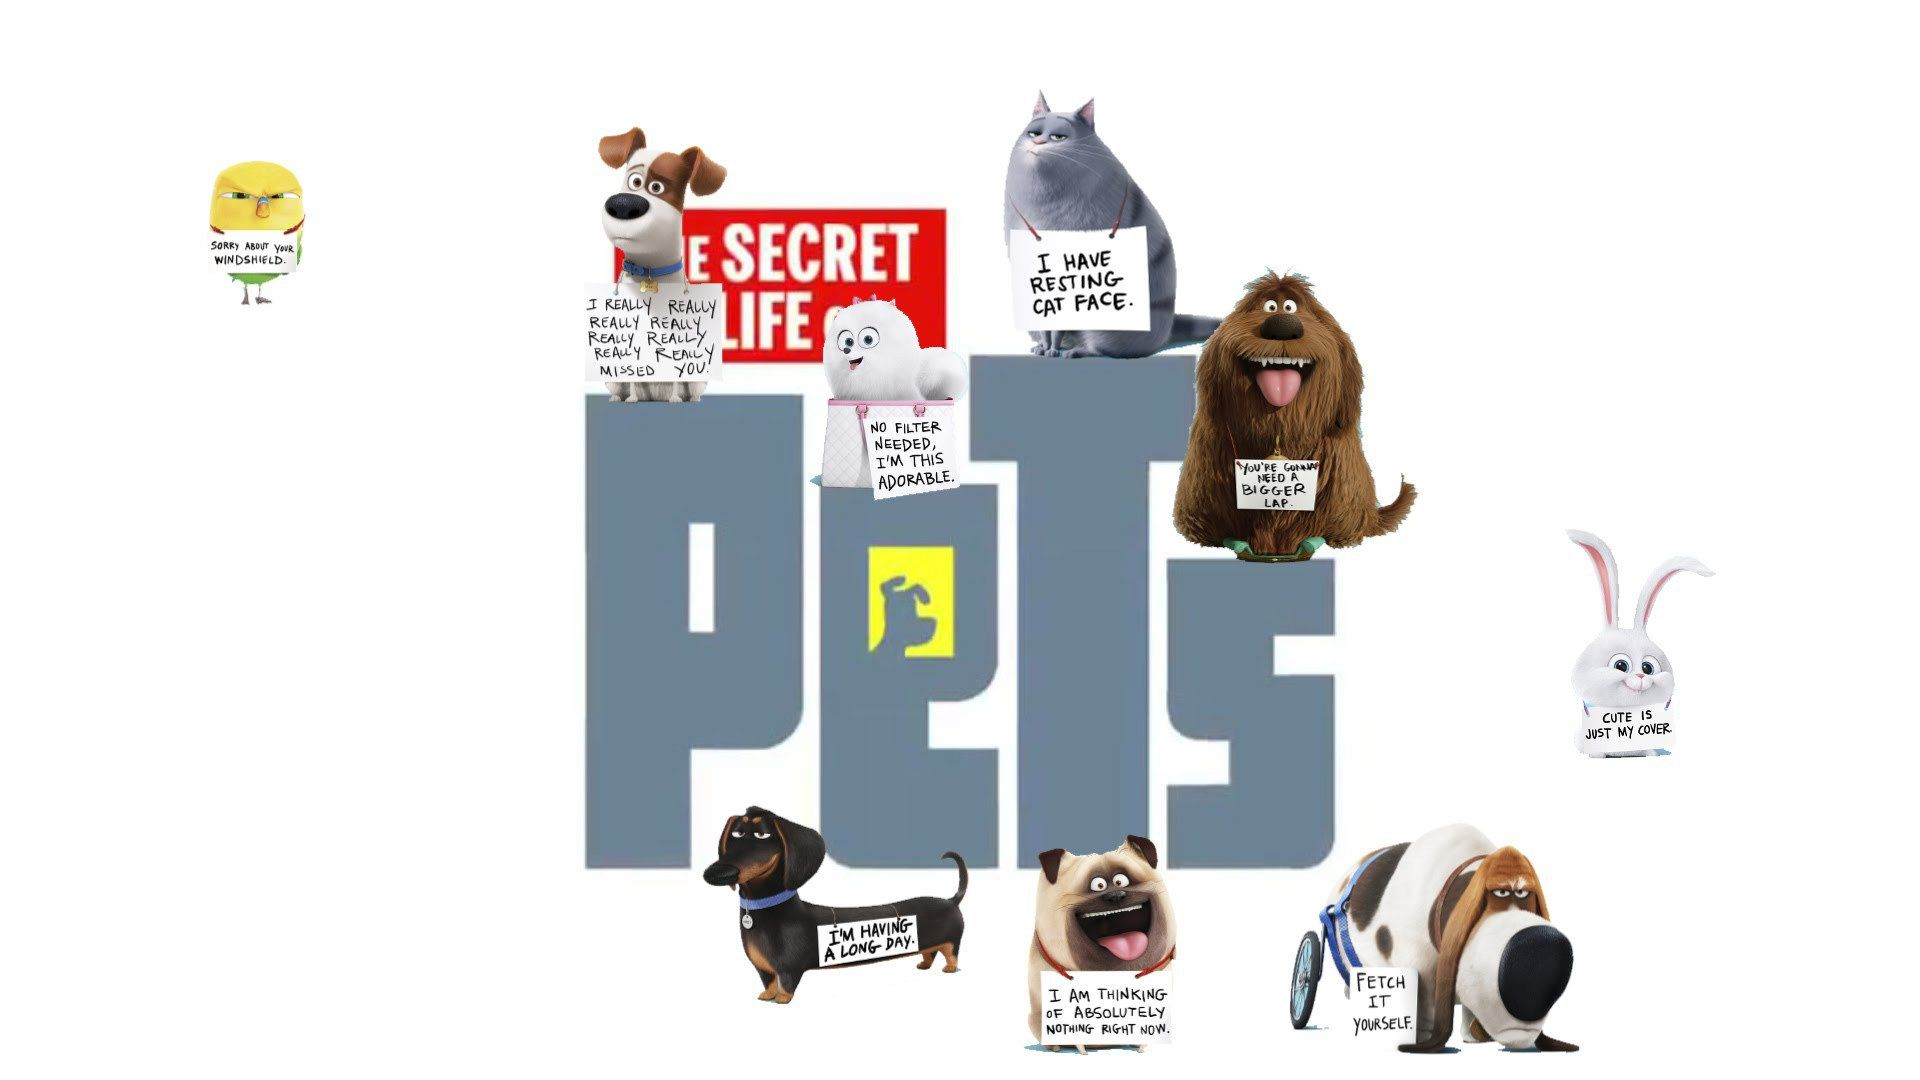 The Secret Life Of Pets Snowball And Max Chloe Wallpaper Hd Secret Life Of Pets Secret Life Pets